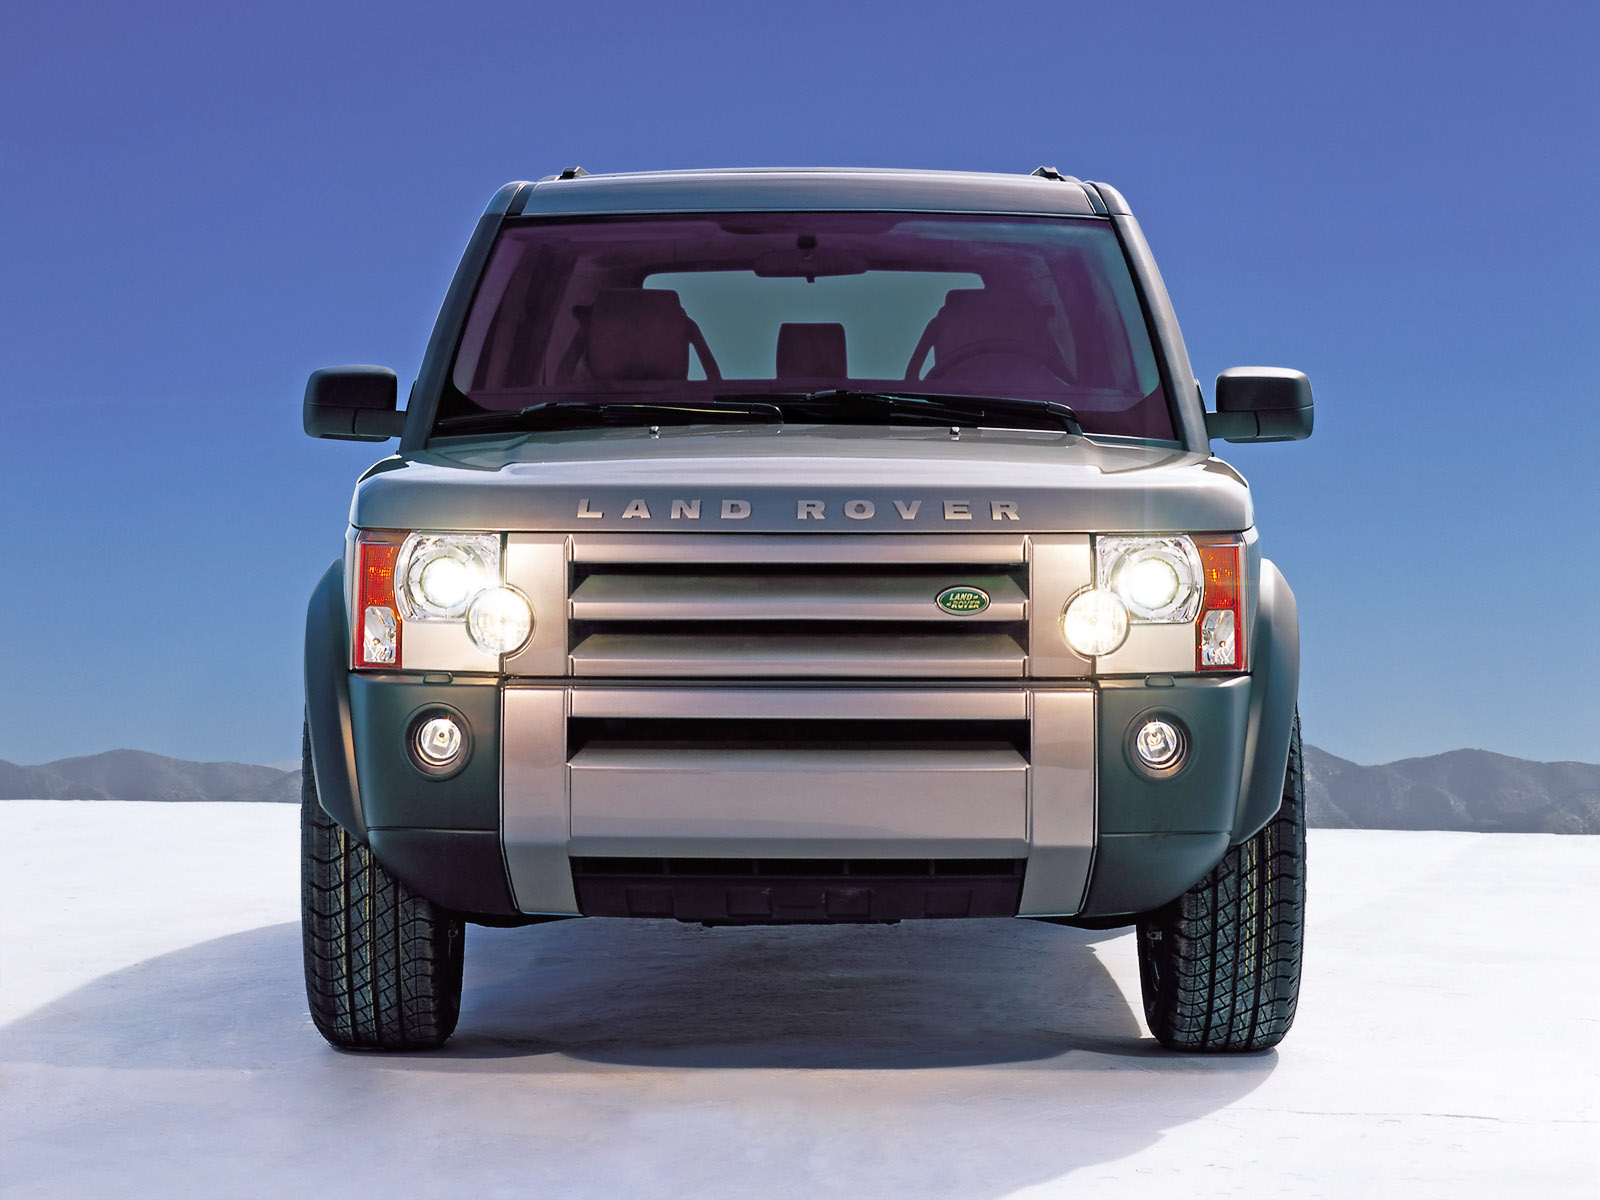 discovery chrome landrover land apply indicator welcome caps itm rover parts light cover not mirror freelander led does